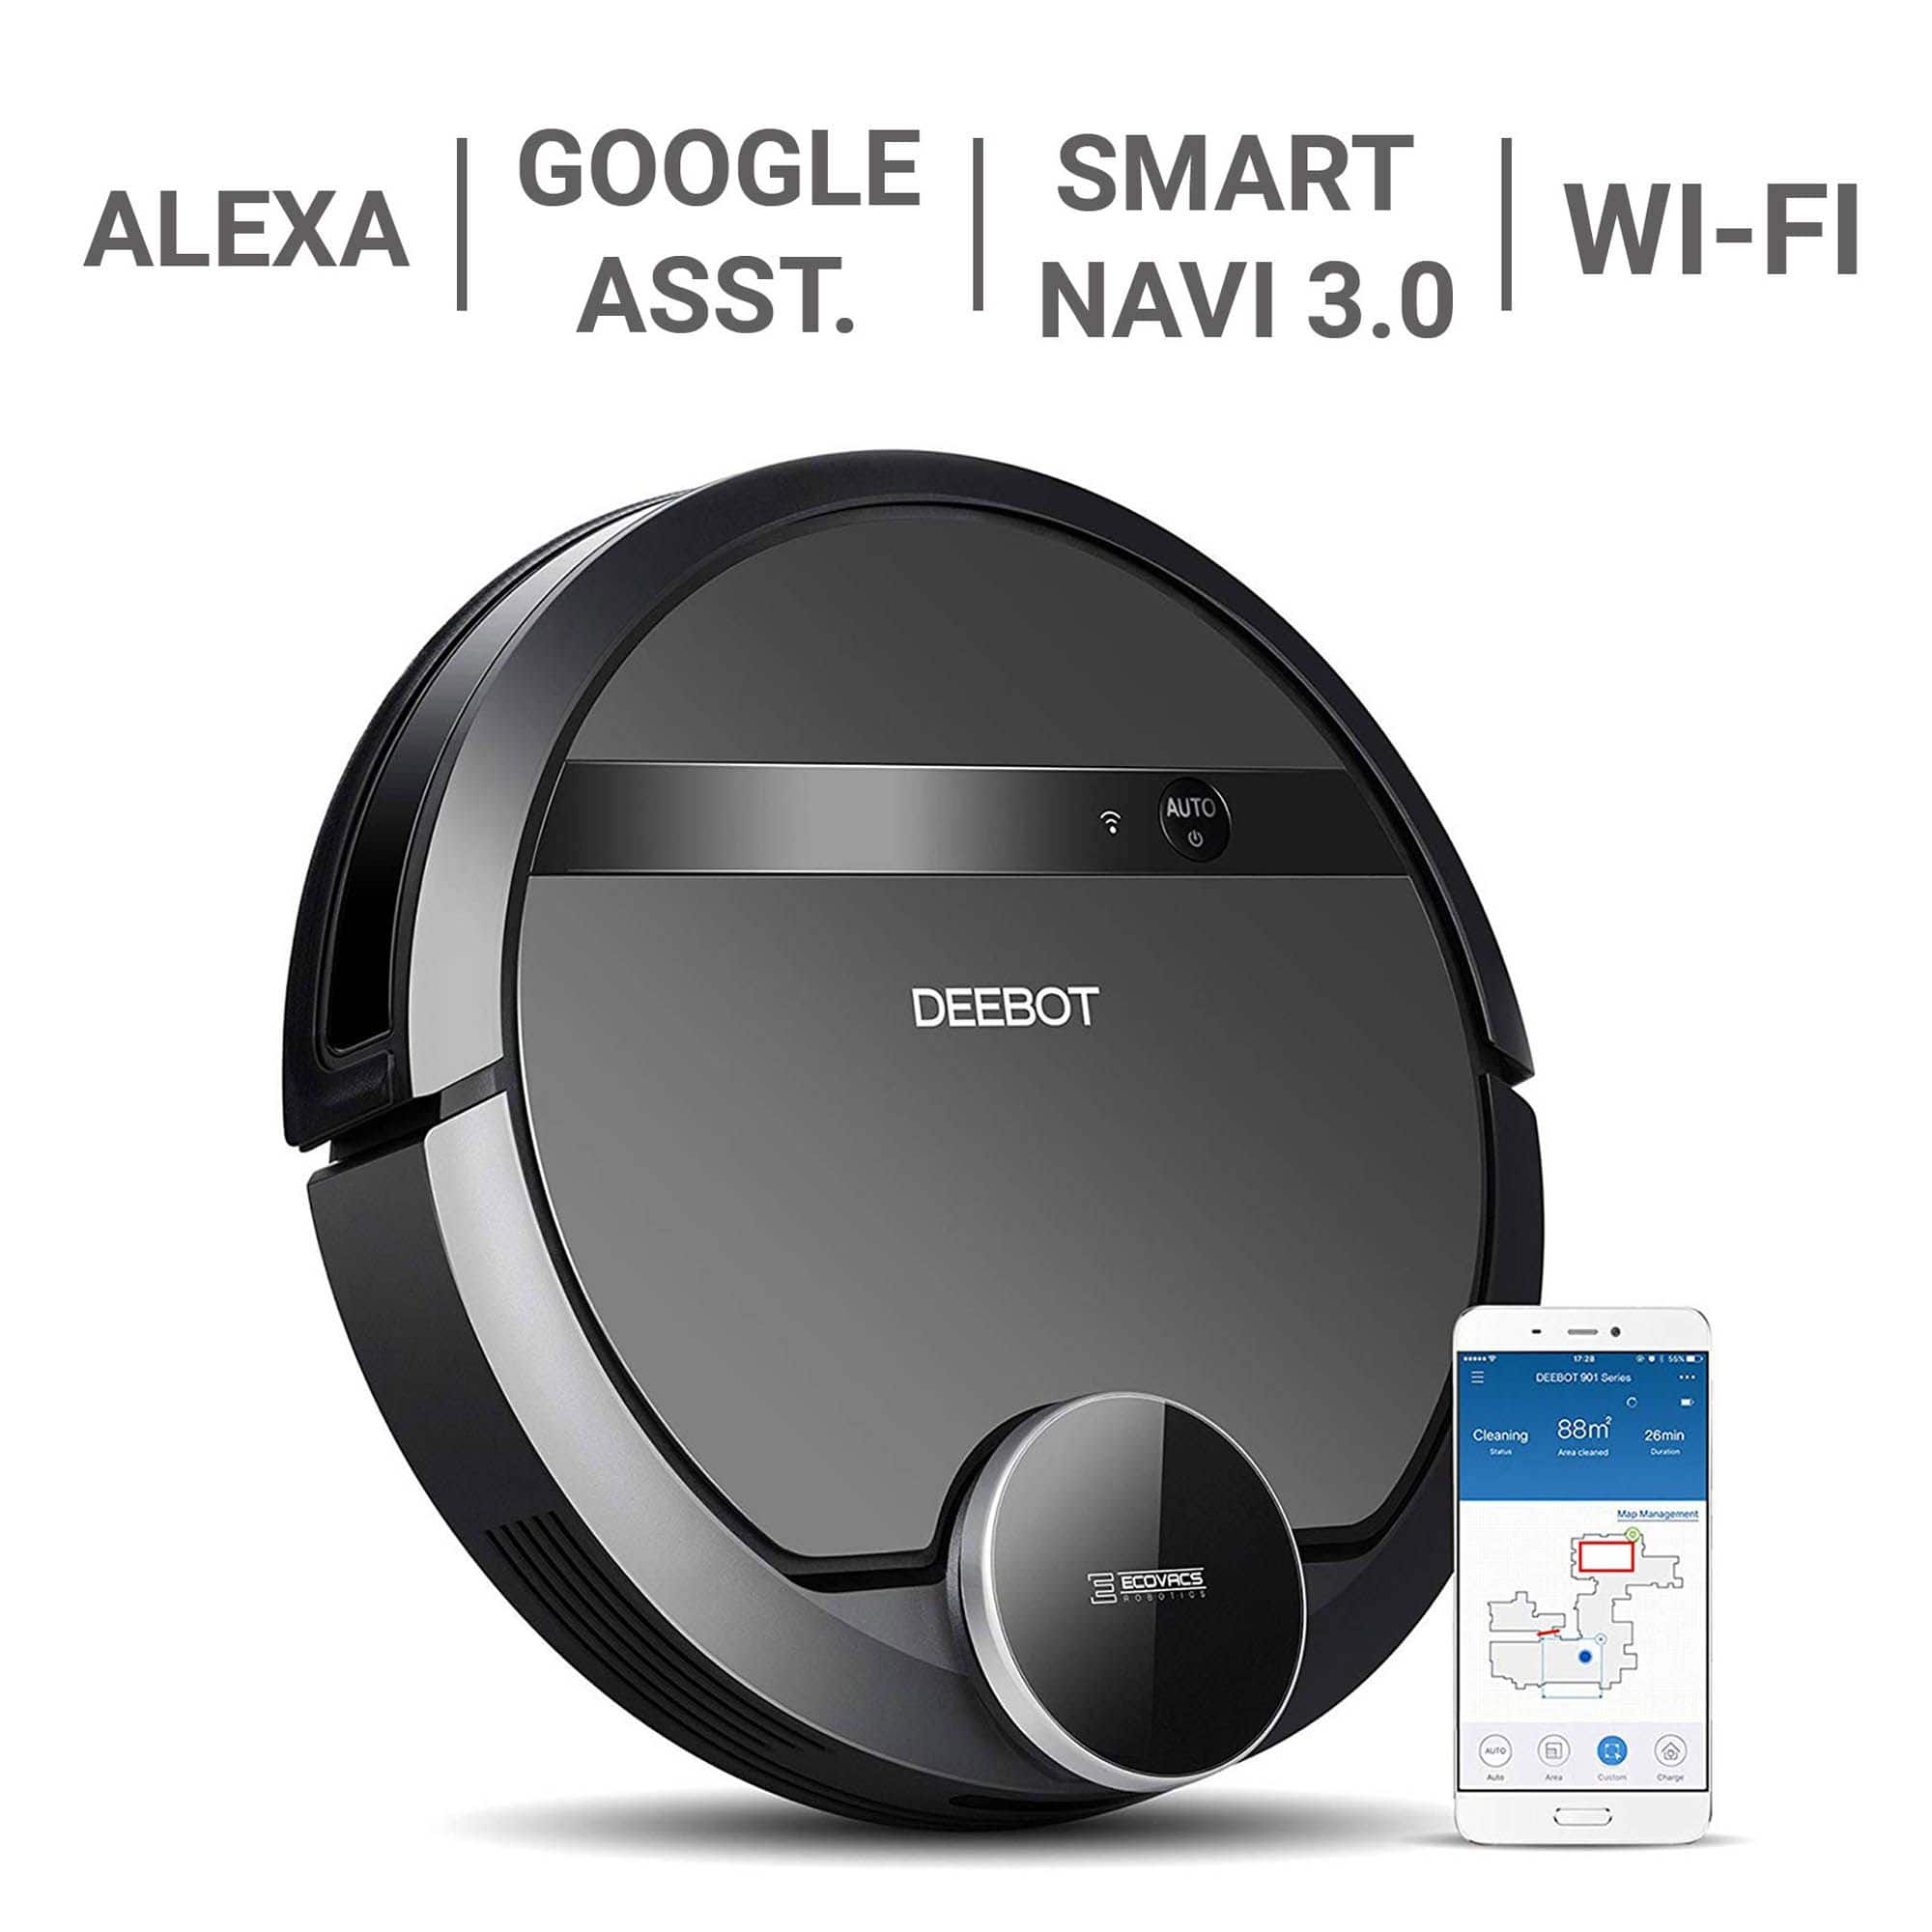 ECOVACS DEEBOT 901 Smart Robot Vacuum with Mapping for $189.99 @ BJs.com